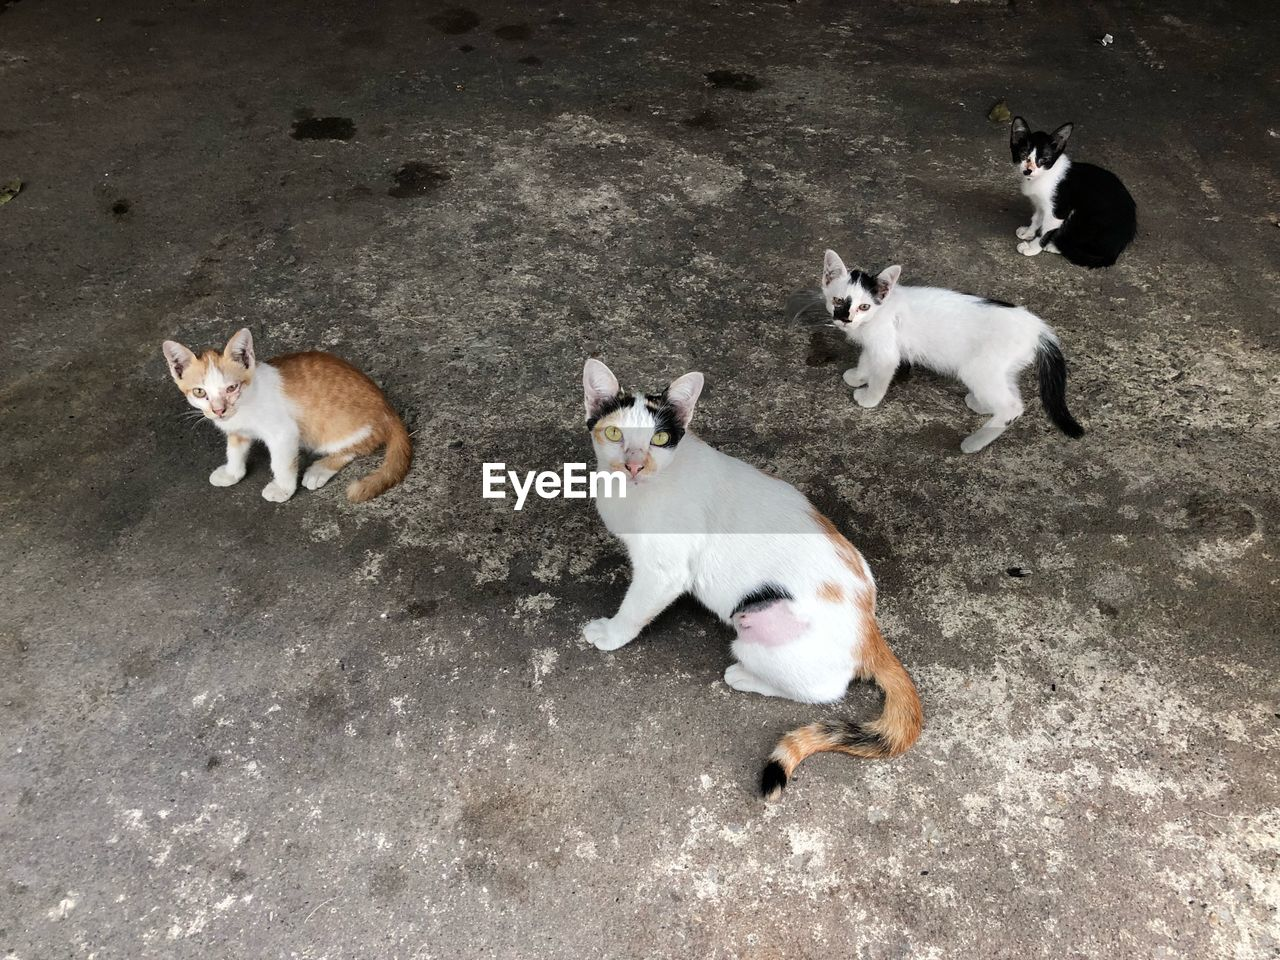 animal themes, animal, mammal, group of animals, domestic, domestic animals, pets, cat, domestic cat, feline, high angle view, vertebrate, young animal, two animals, no people, day, nature, dog, canine, animal family